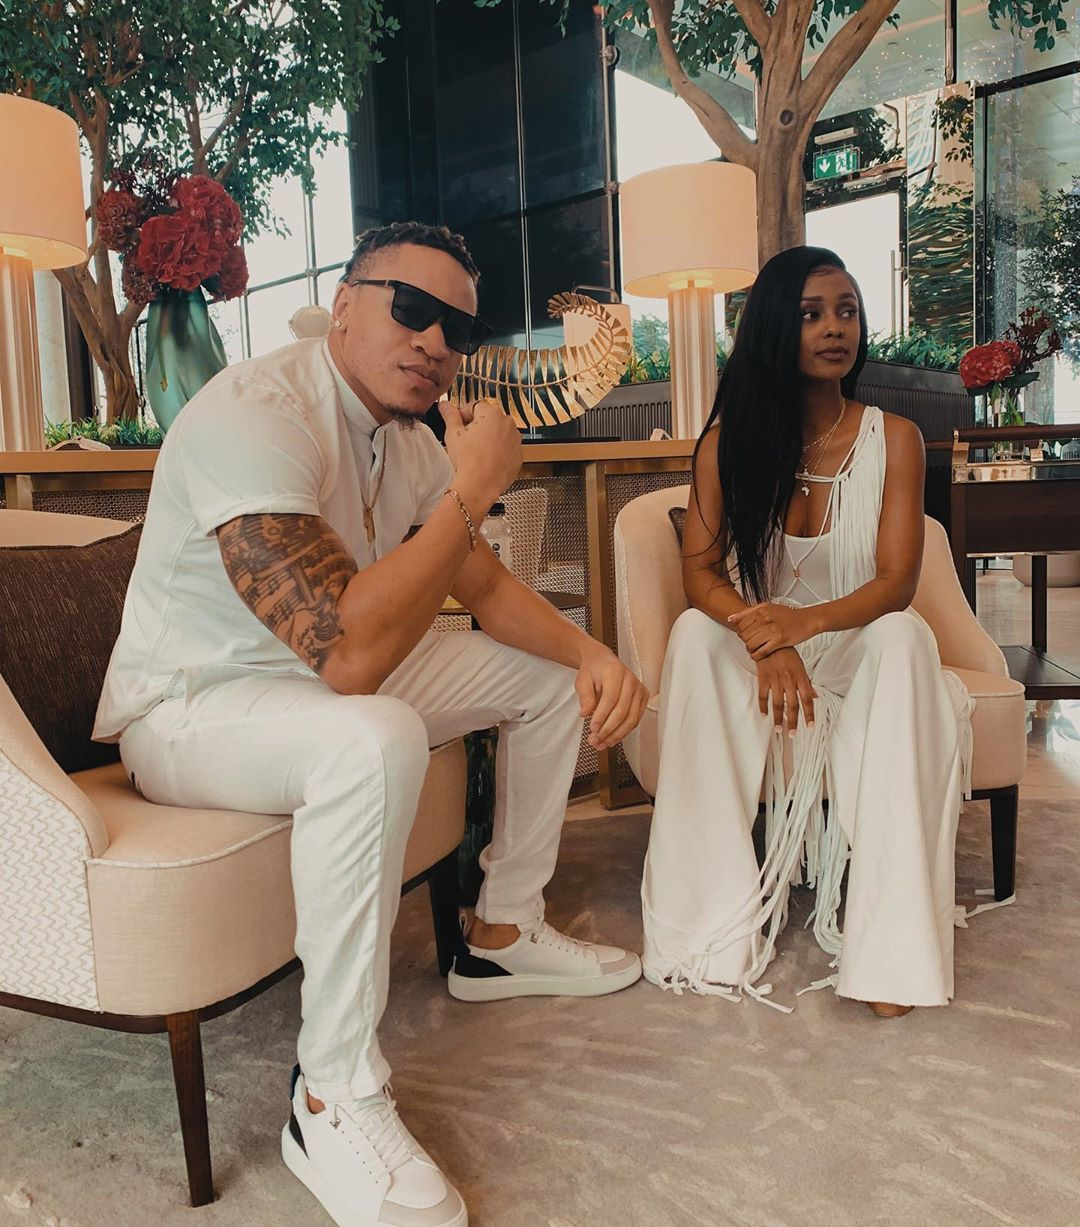 Fall Further in Love With Dubai Via Rotimi And Vanessa Mdee's Super Romantic Vacation   BN Style